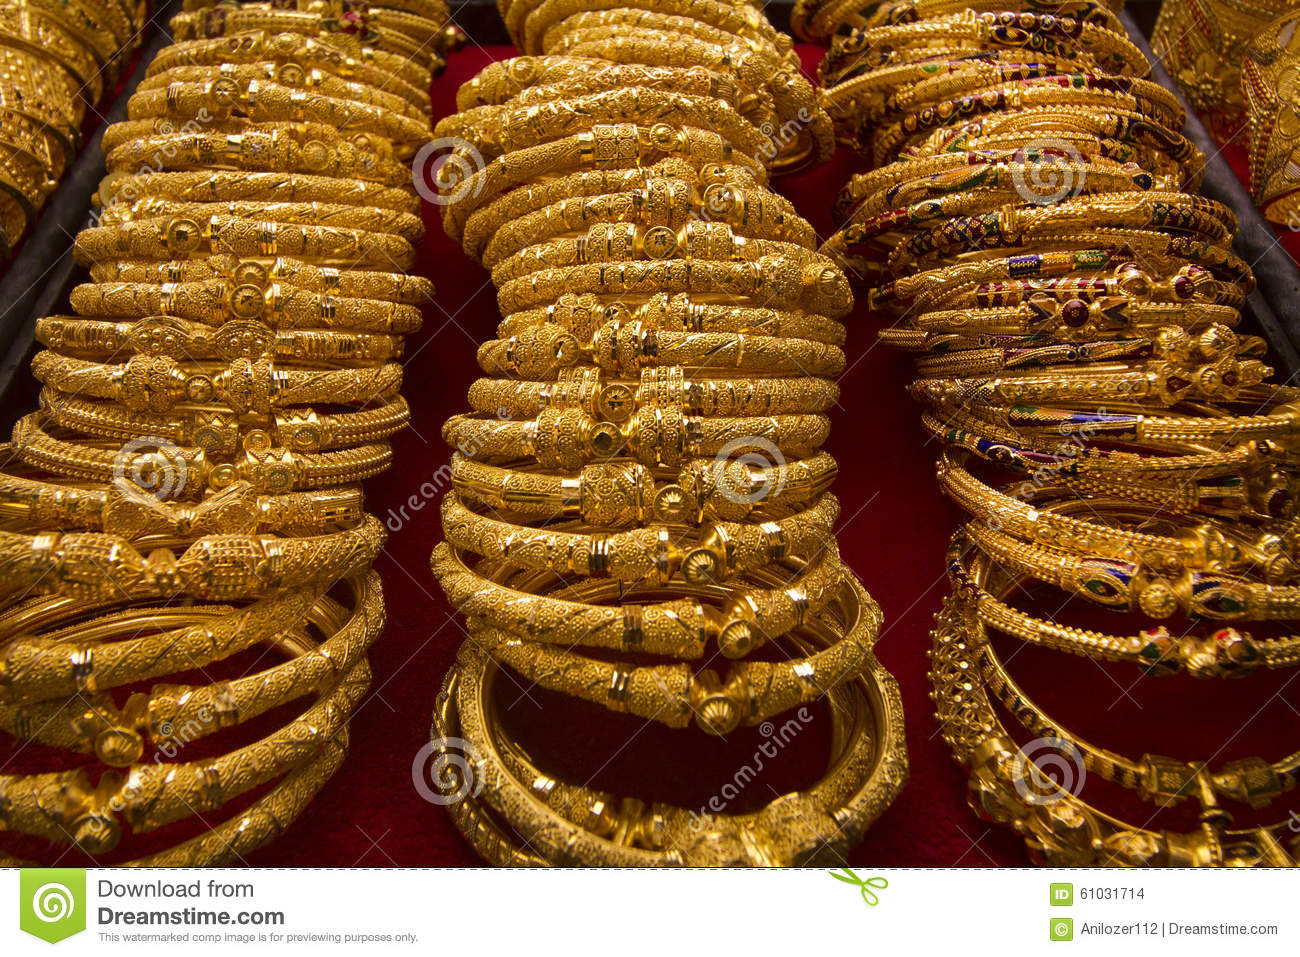 dubai alamy photo jewellery middle east photos stock emirates souk arab united image images gold